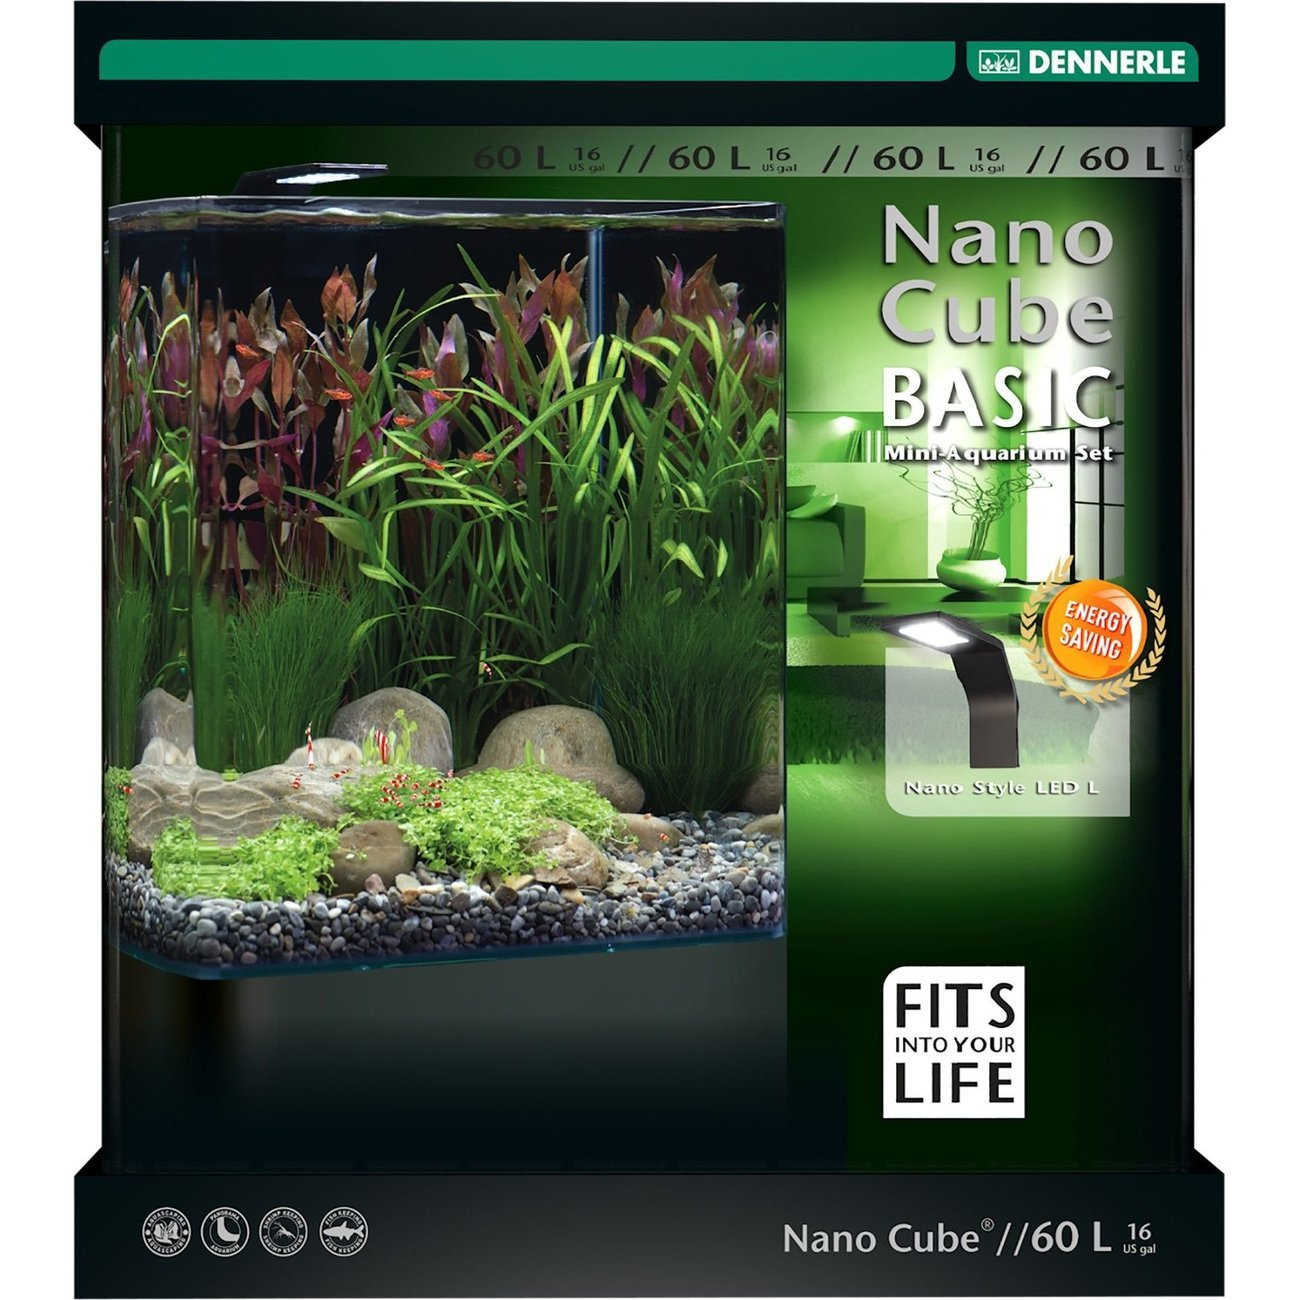 Dennerle NanoCube Basic Style LED Aquarium, 60 Liter